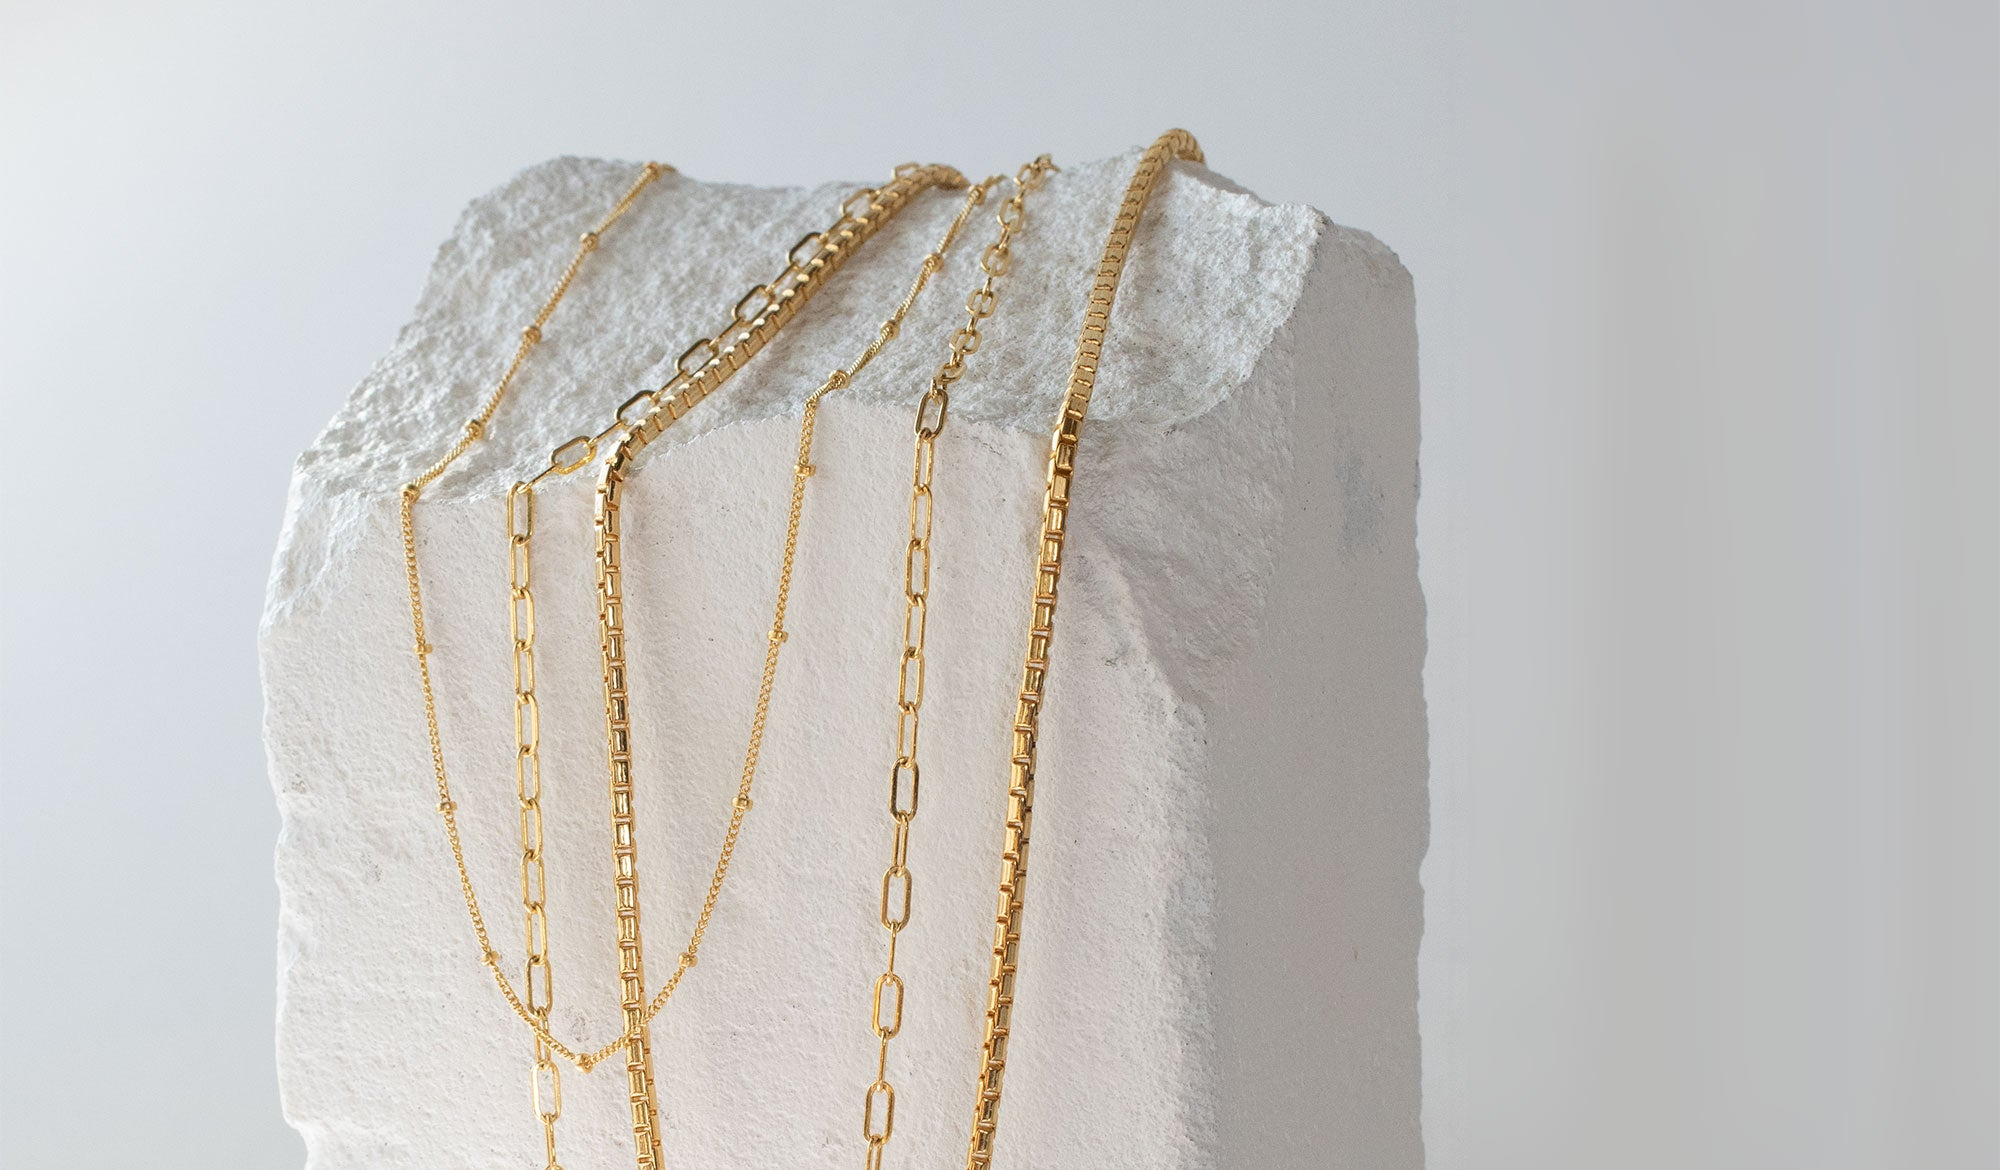 Our Layering Chains